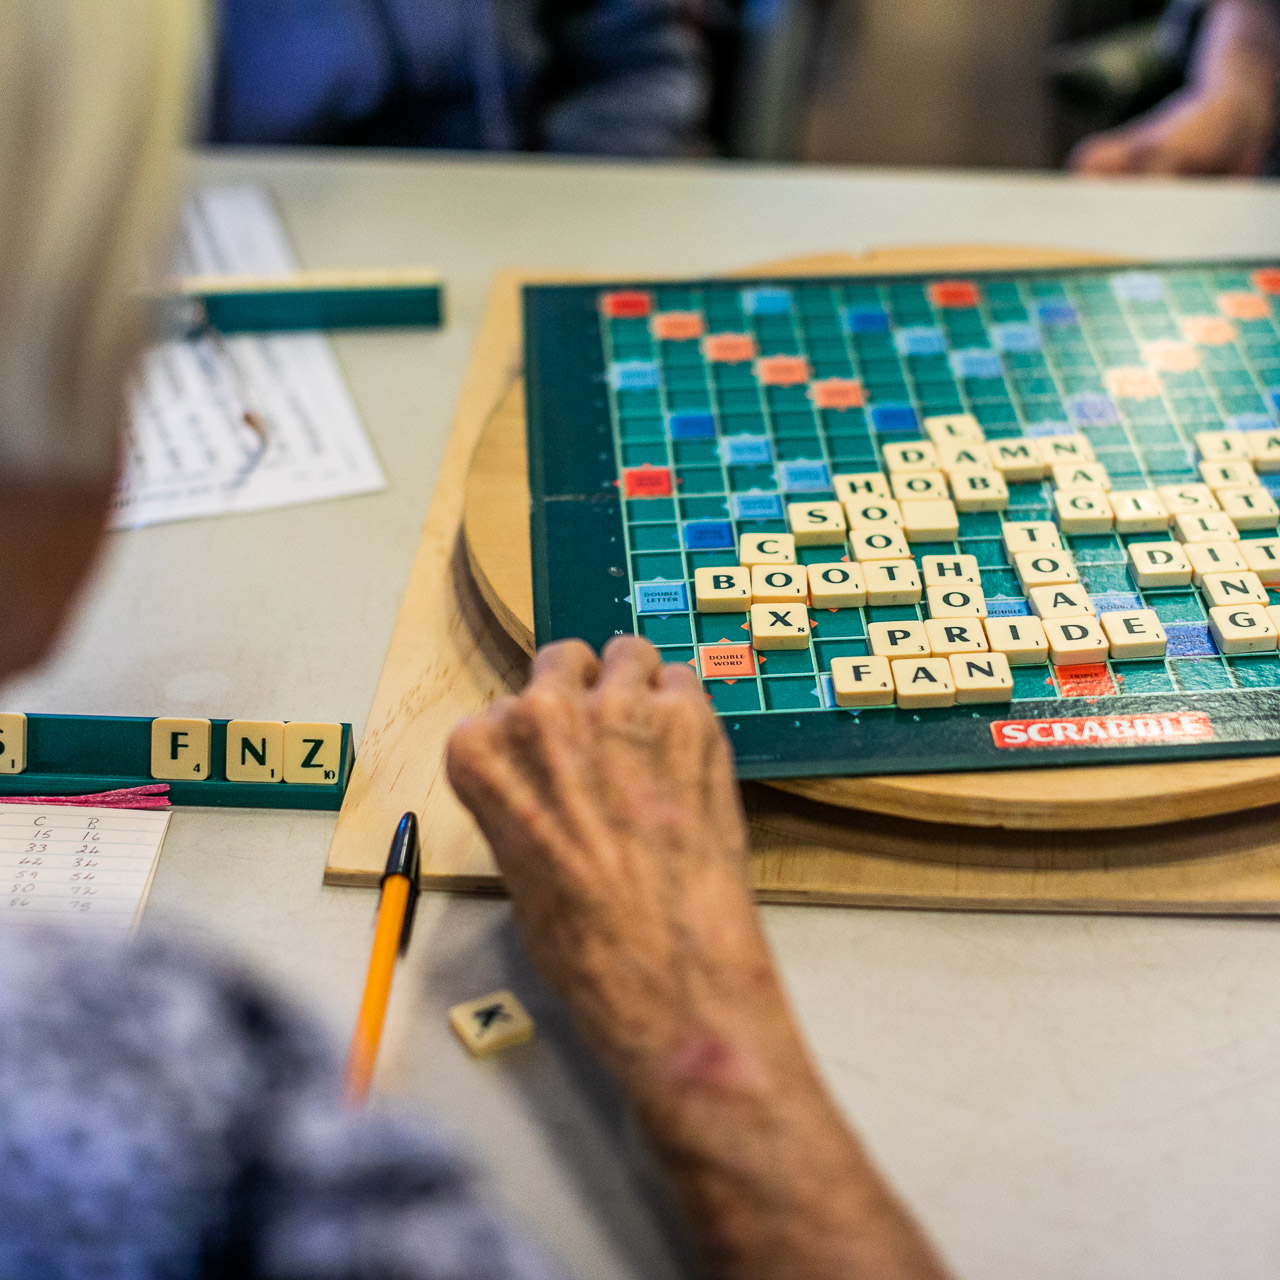 Old lady's hand a scrabble board